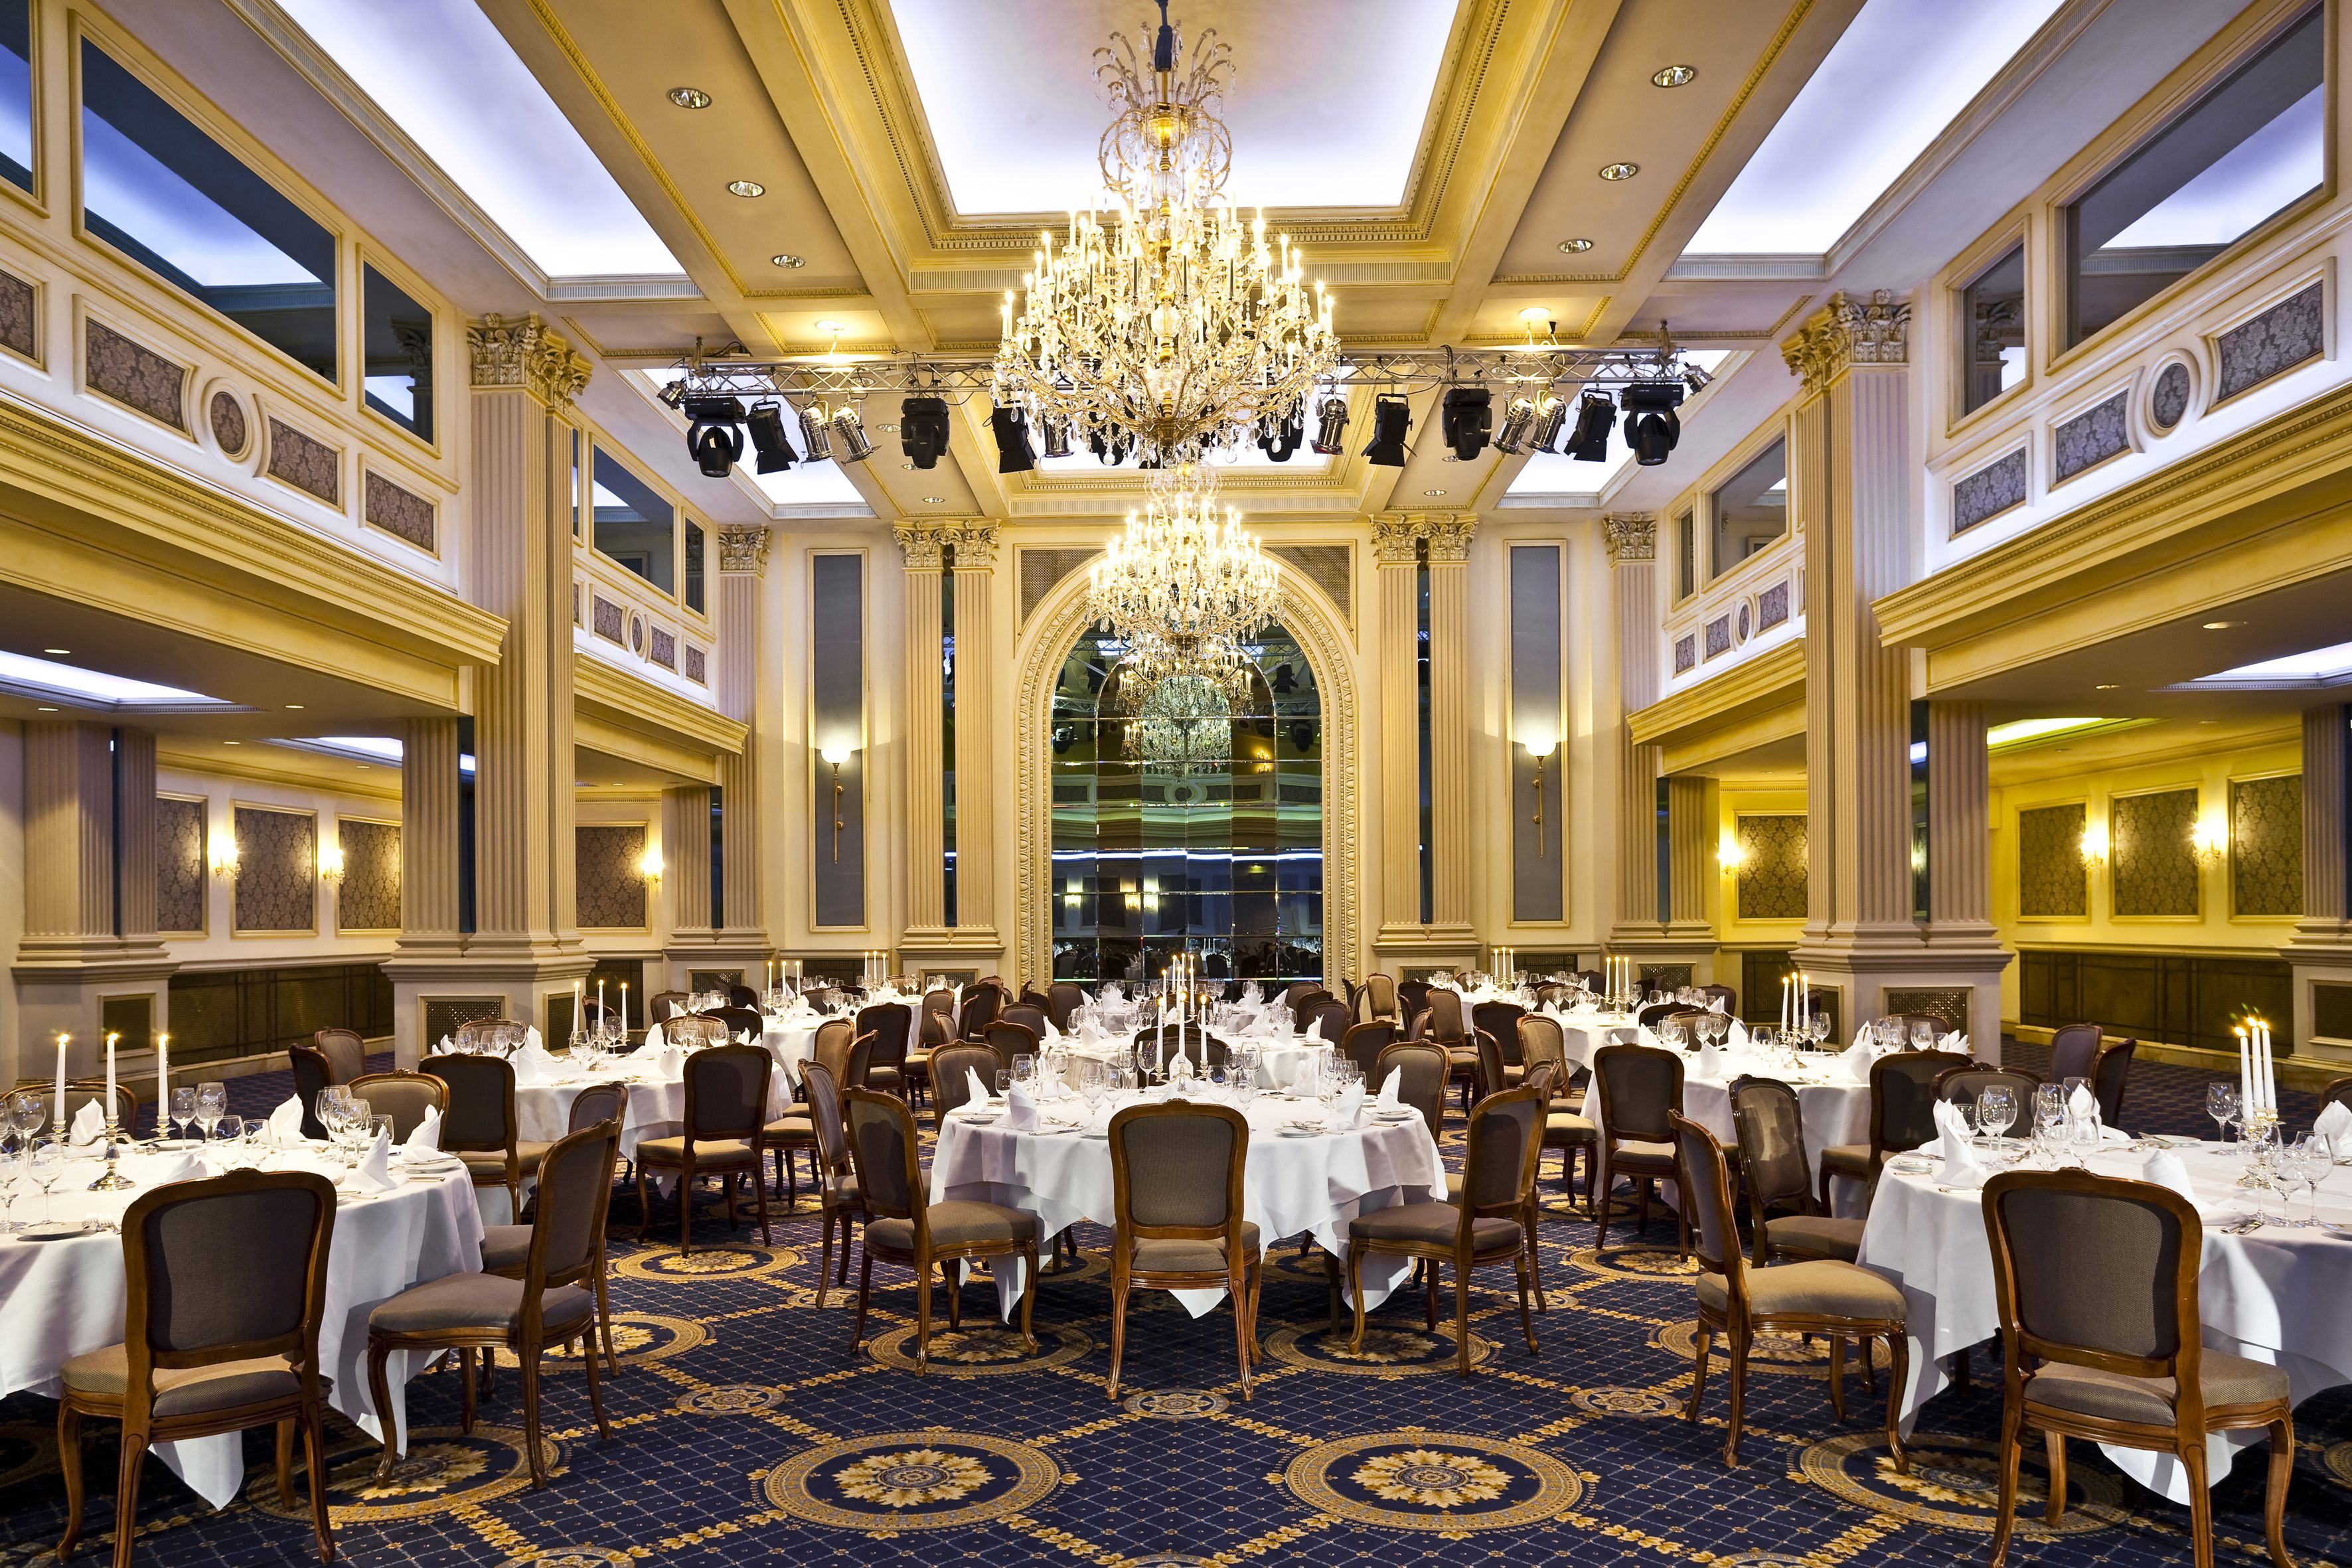 Meeting and event spaces at hilton austria hotels vienna and - Grand Hotel Wien Ballroom Luxpitality Grandhotelwien Ballroom Vienna Venue